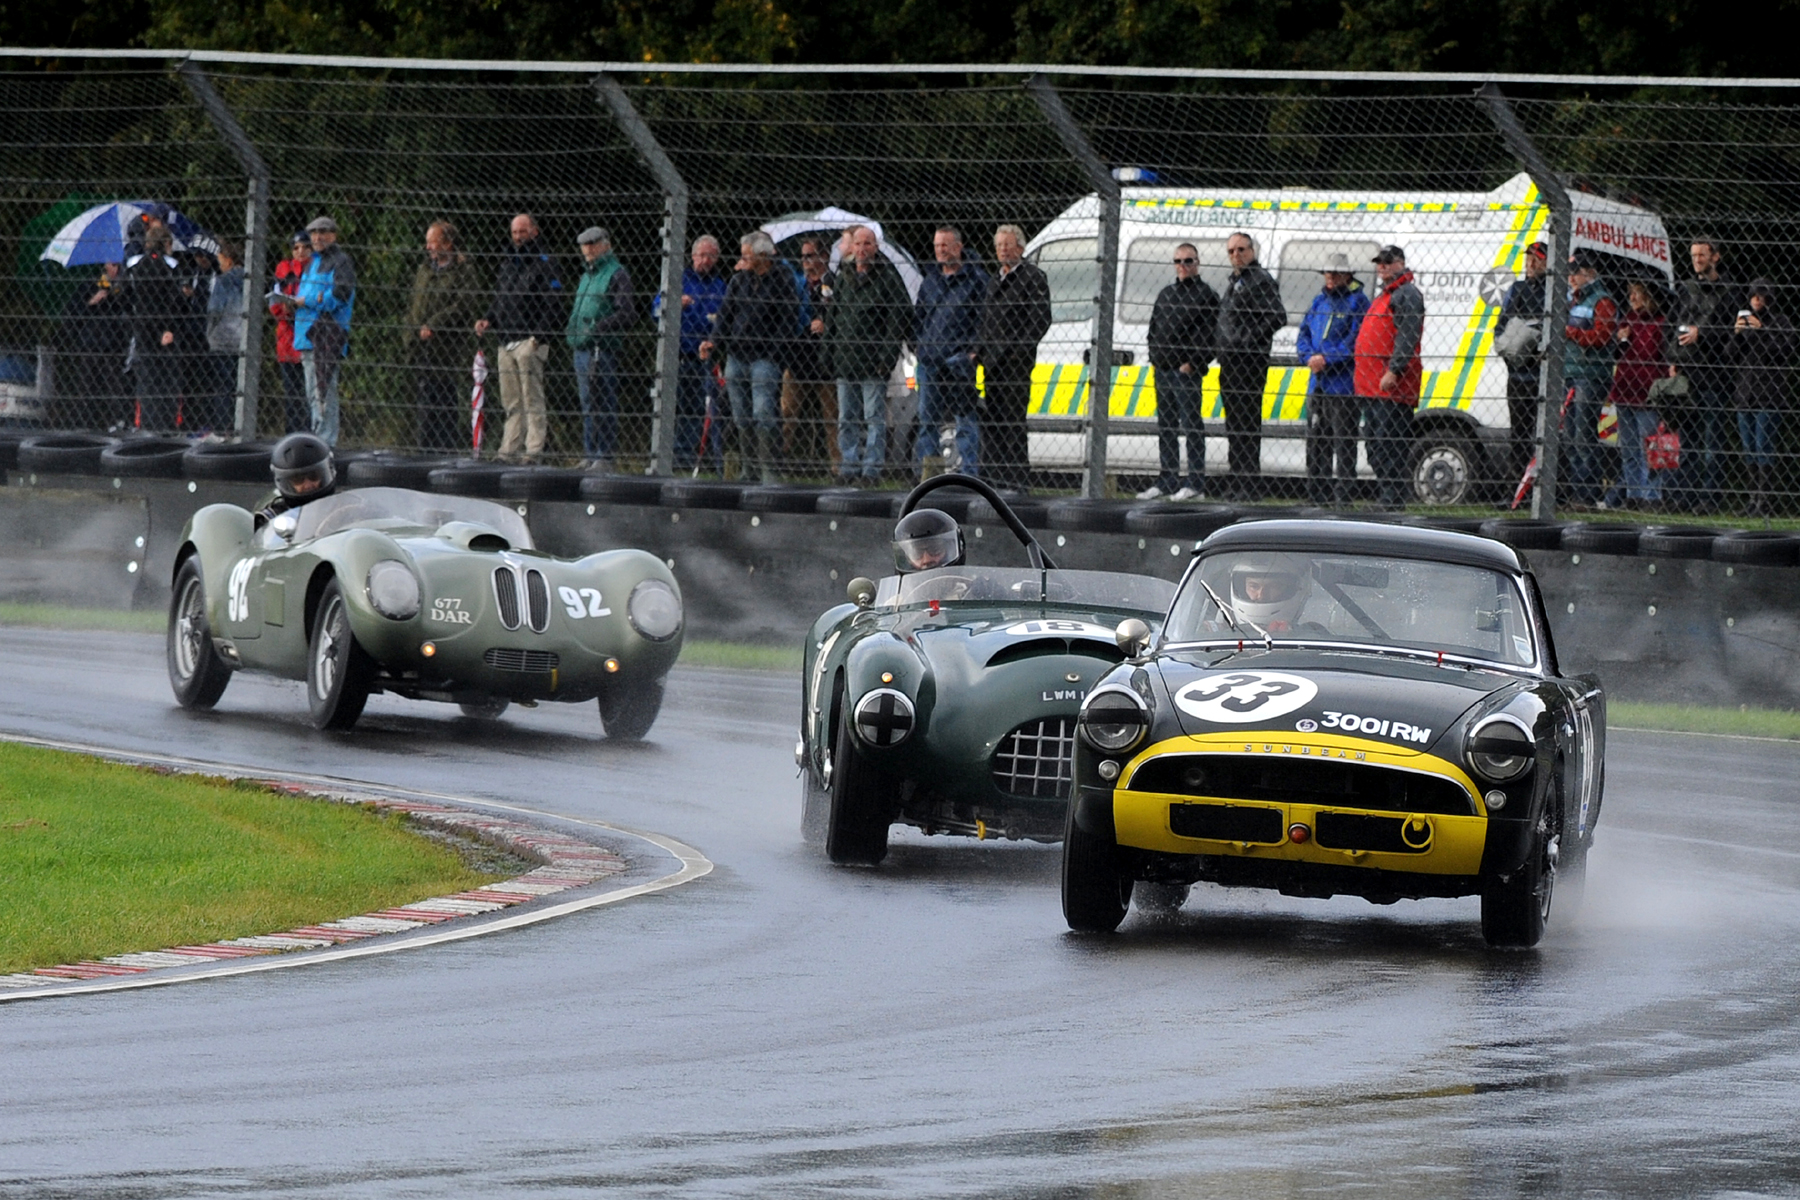 These photos surely show FISCAR at its best. Keith Hampson in his Sunbeam Alpine Le Mans leads Charles Fripp in the unique Gomm Jaguar and Tom McWhirter in the splendid Tojeiro Bristol                                                                                    Photo - Jeff Bloxham